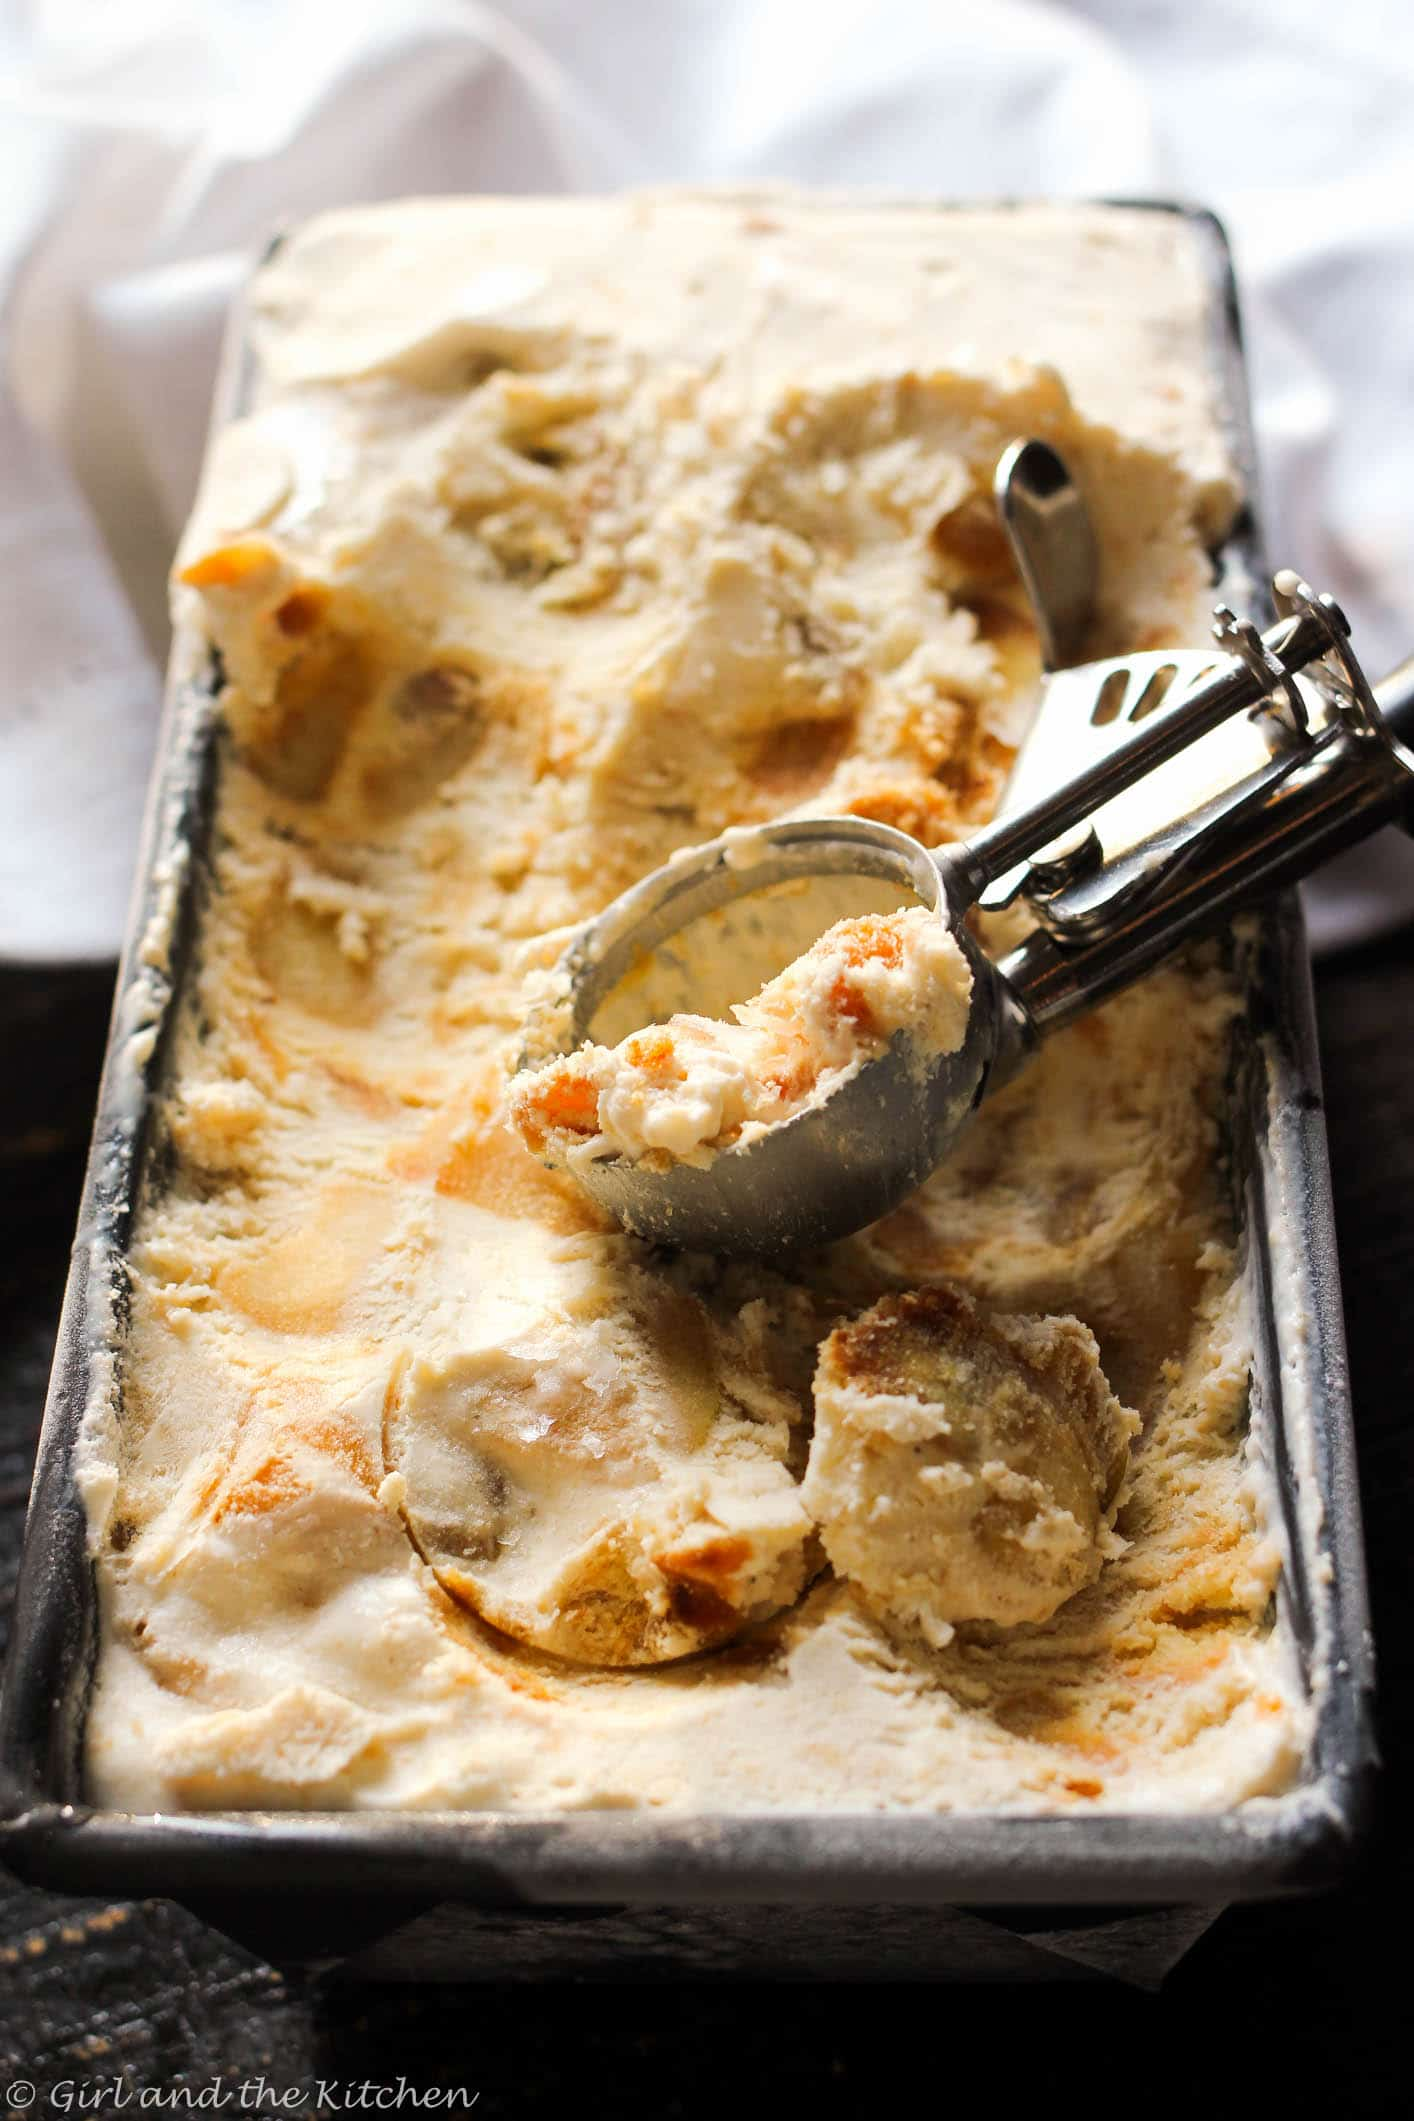 Delicious and creamy no-churn ice cream sweetened with chunks of whiskey soaked caramelized apples and shortbread cookies.